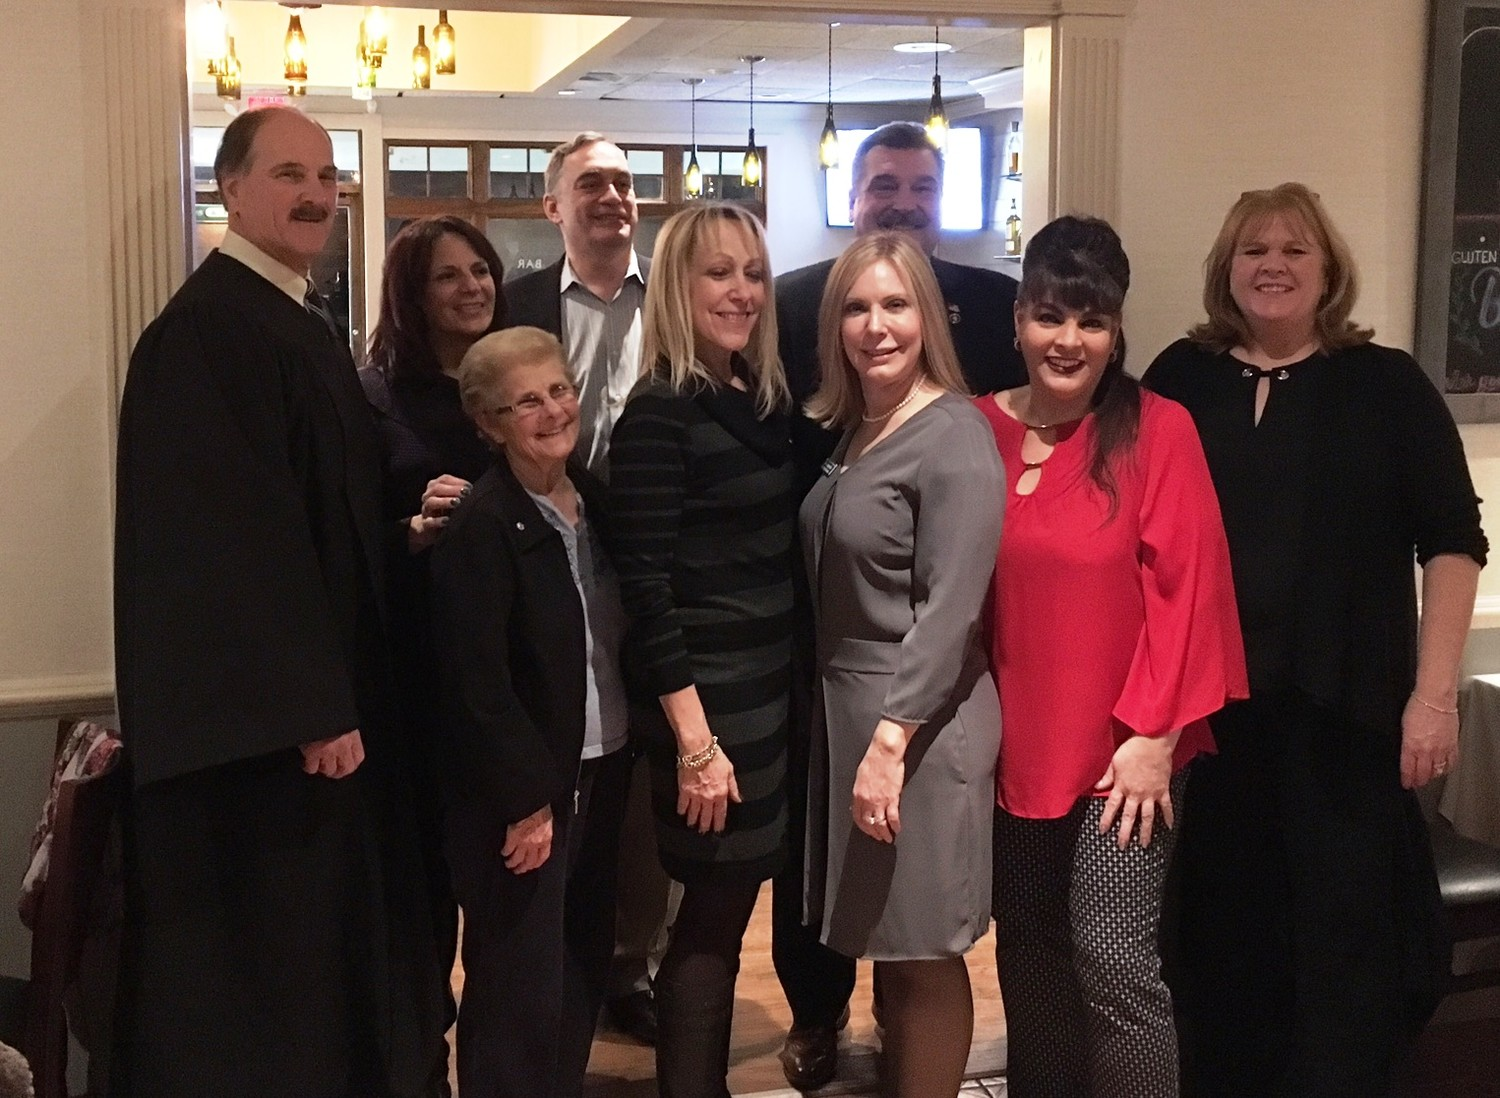 Judge Richard McCord, front-left, Carol Nelson, chamber president Lisa Cohn, Vice President Eve Lupenko, Mary Stanco and Deputy Mayor Maureen Basdavanos, Dr. Maxine Cappel-Mayreis, back-left, Tom Bunger, the chamber's treasurer and Glen Cove Mayor Tim Tenke.